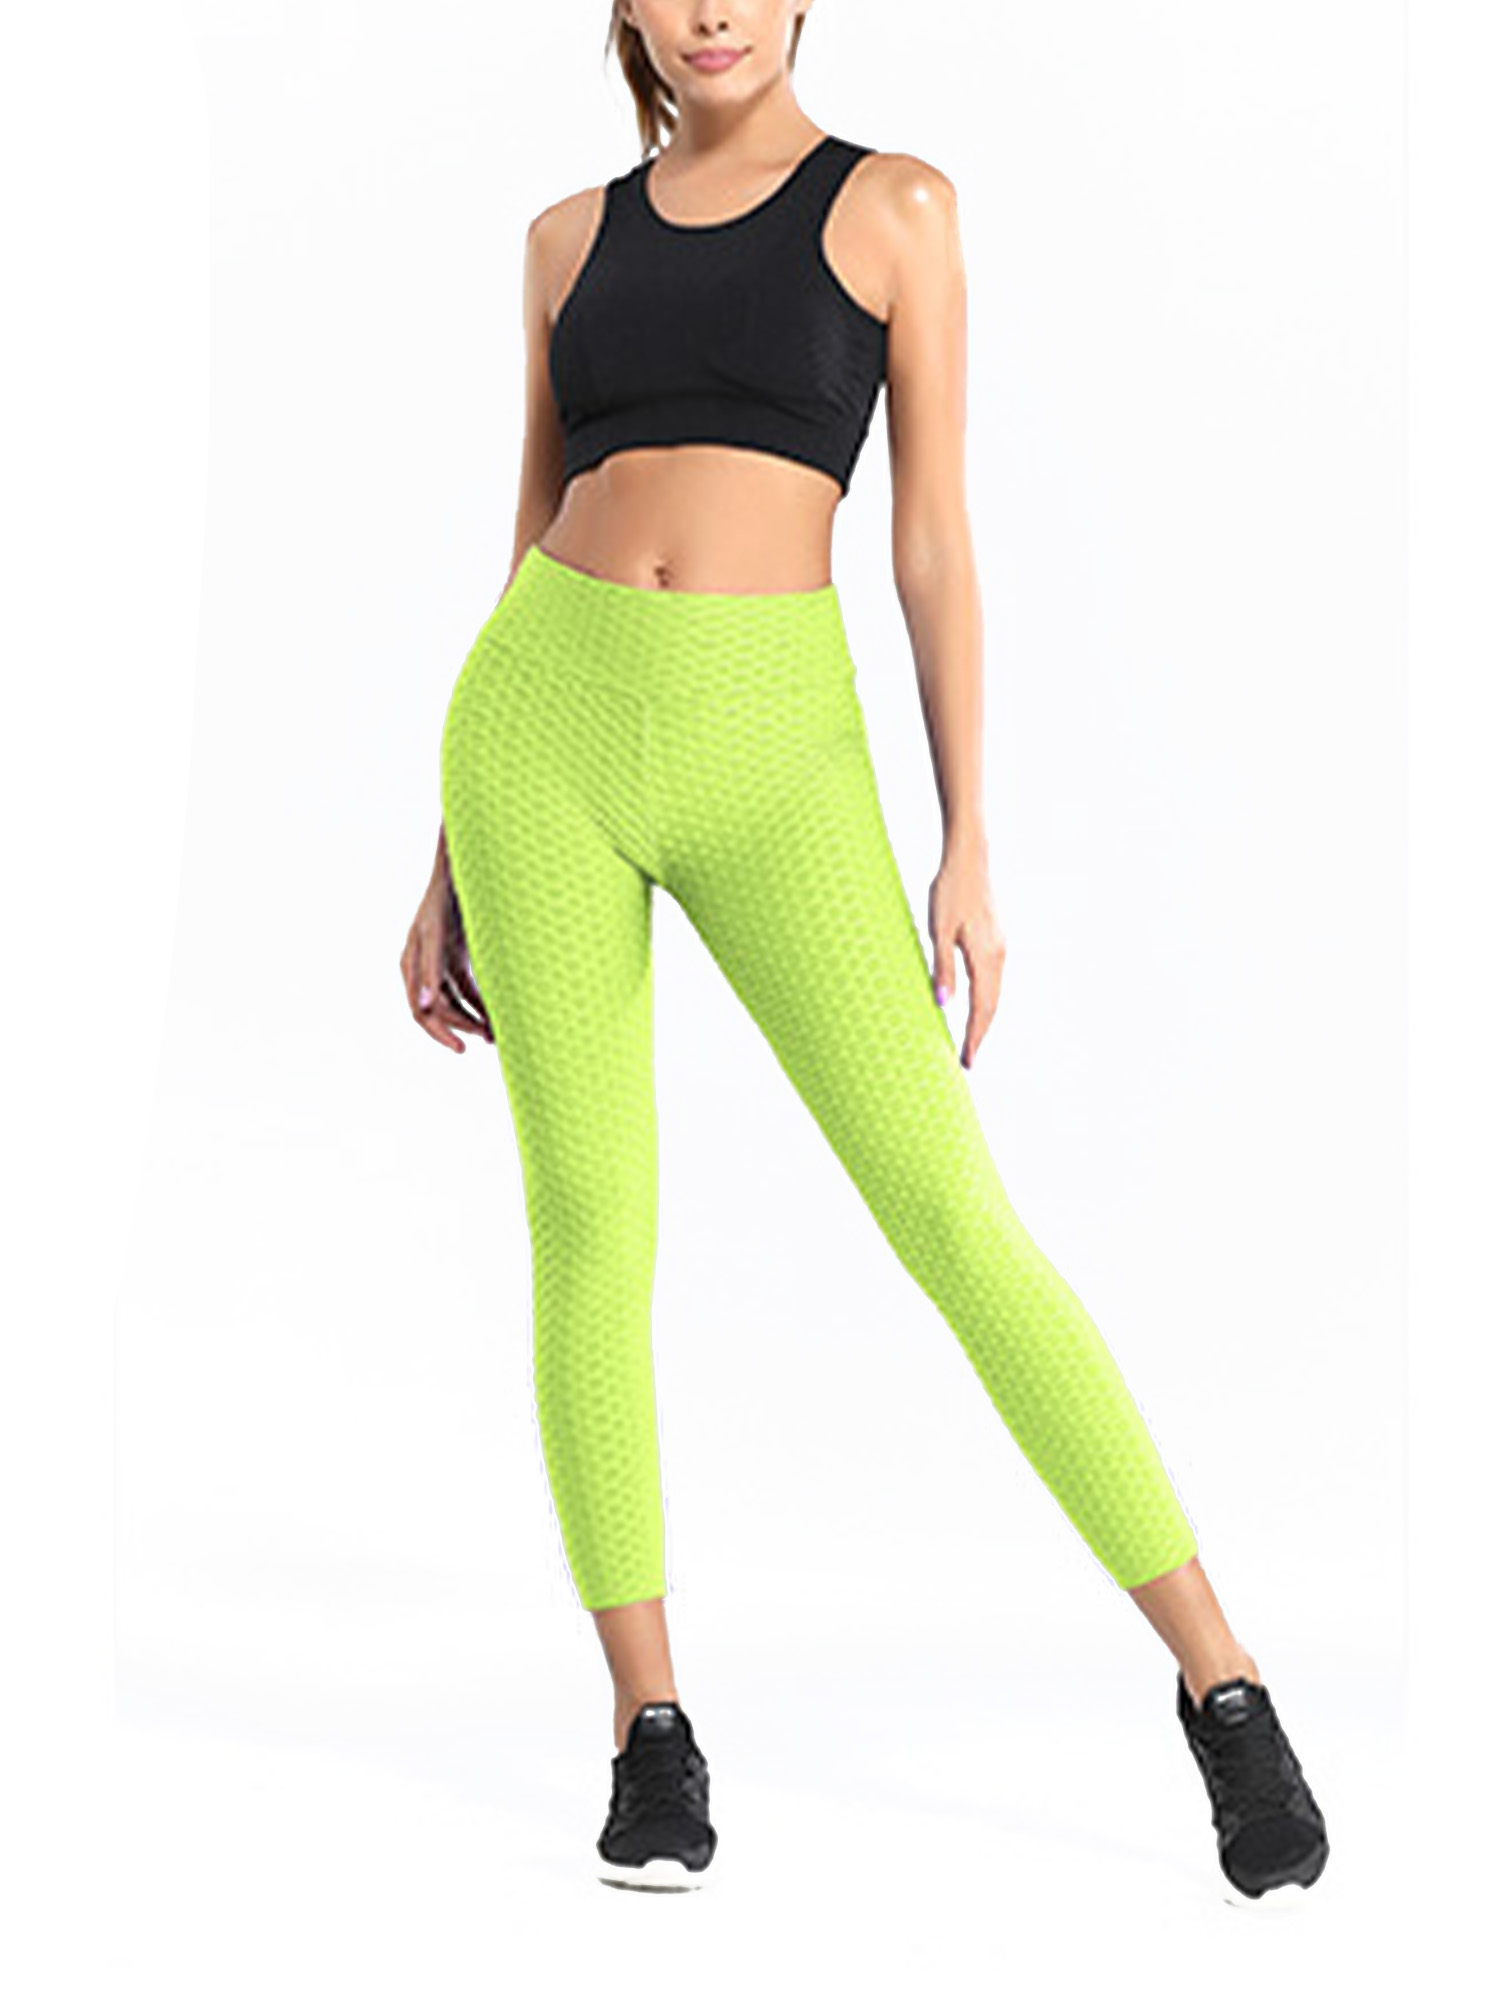 Women Butt Lift Yoga Pants High Waist Leggings Ruched Workout Seamless Trousers